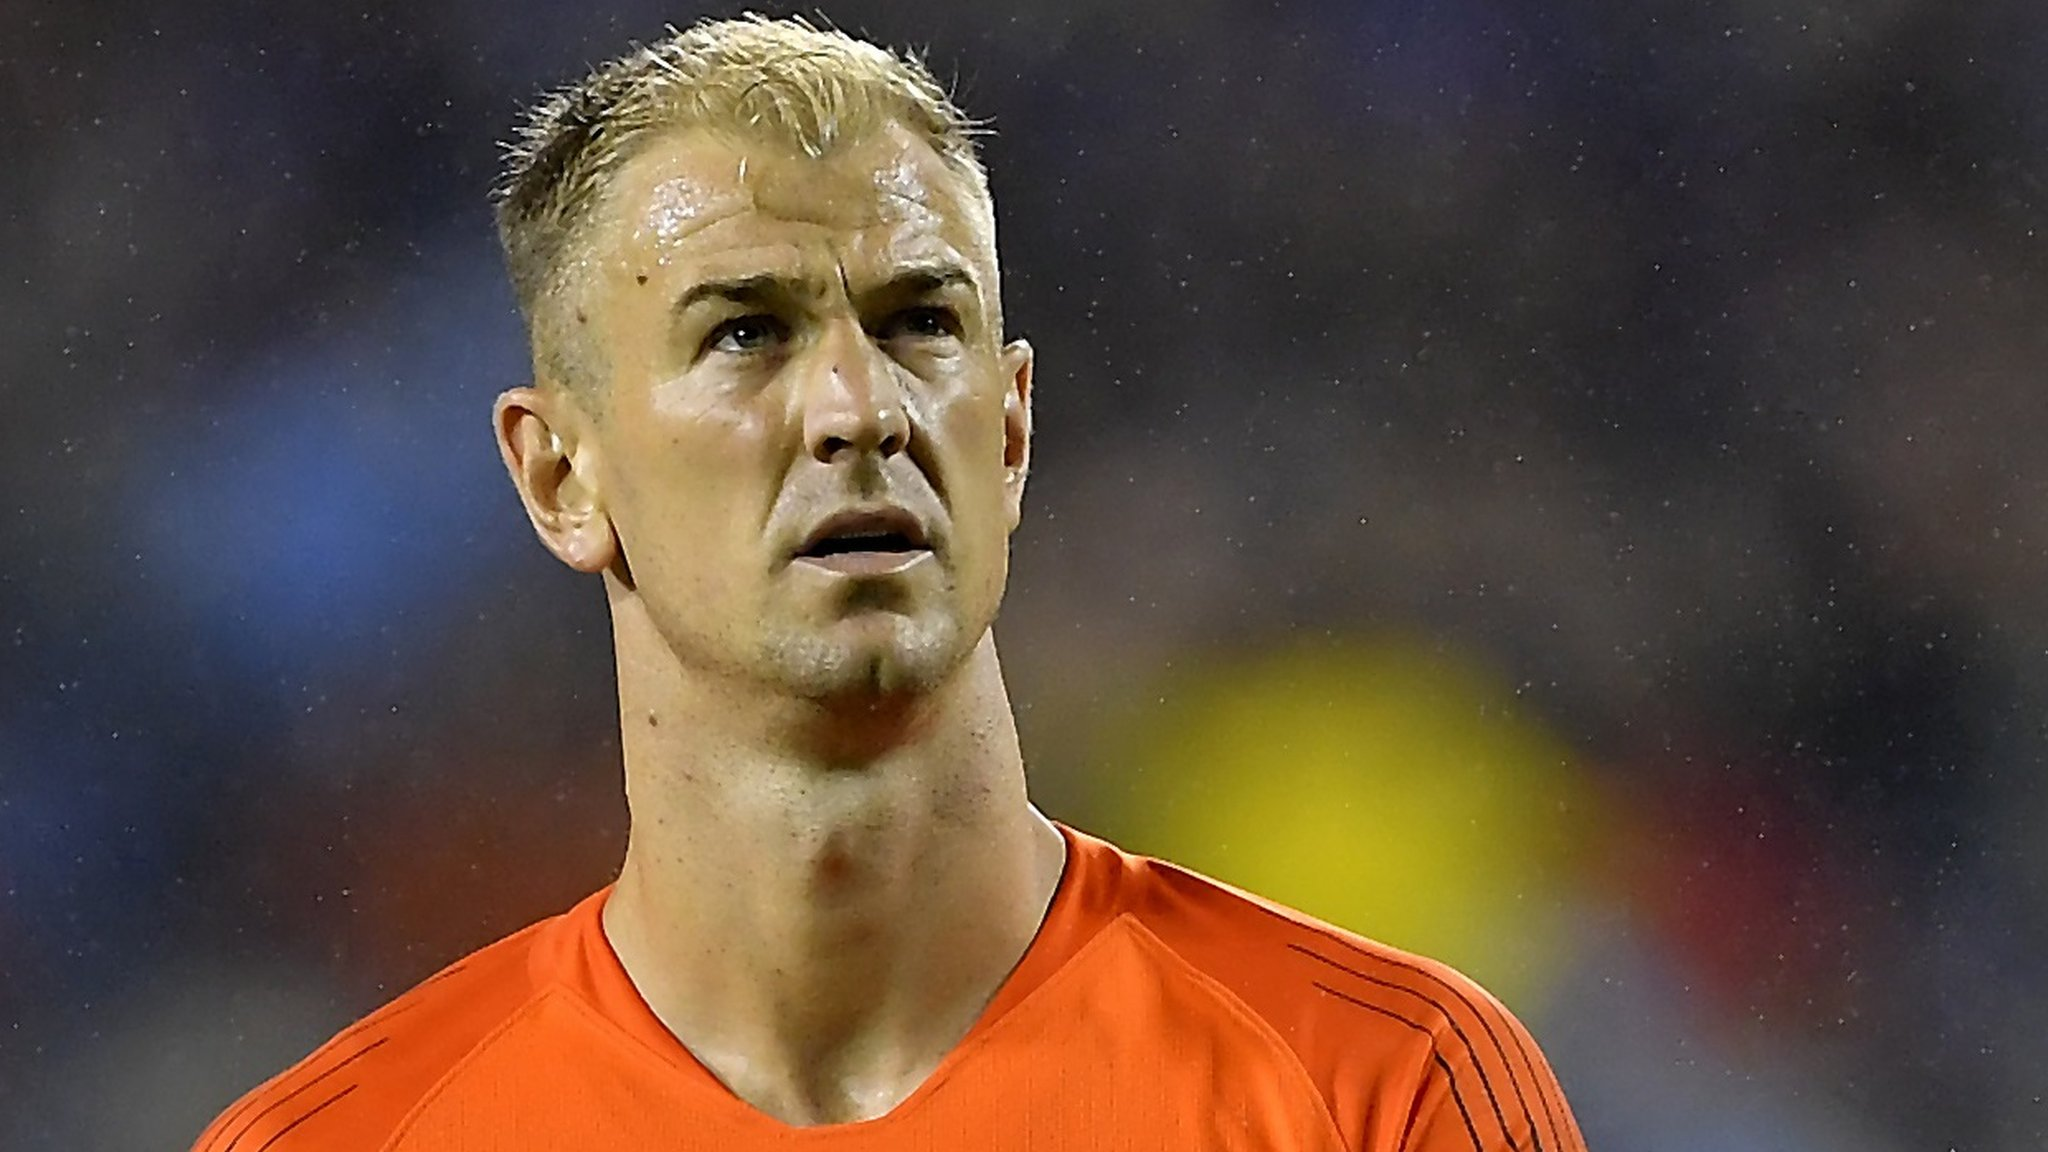 'There's no league that I'd say no to' - Hart wants permanent move